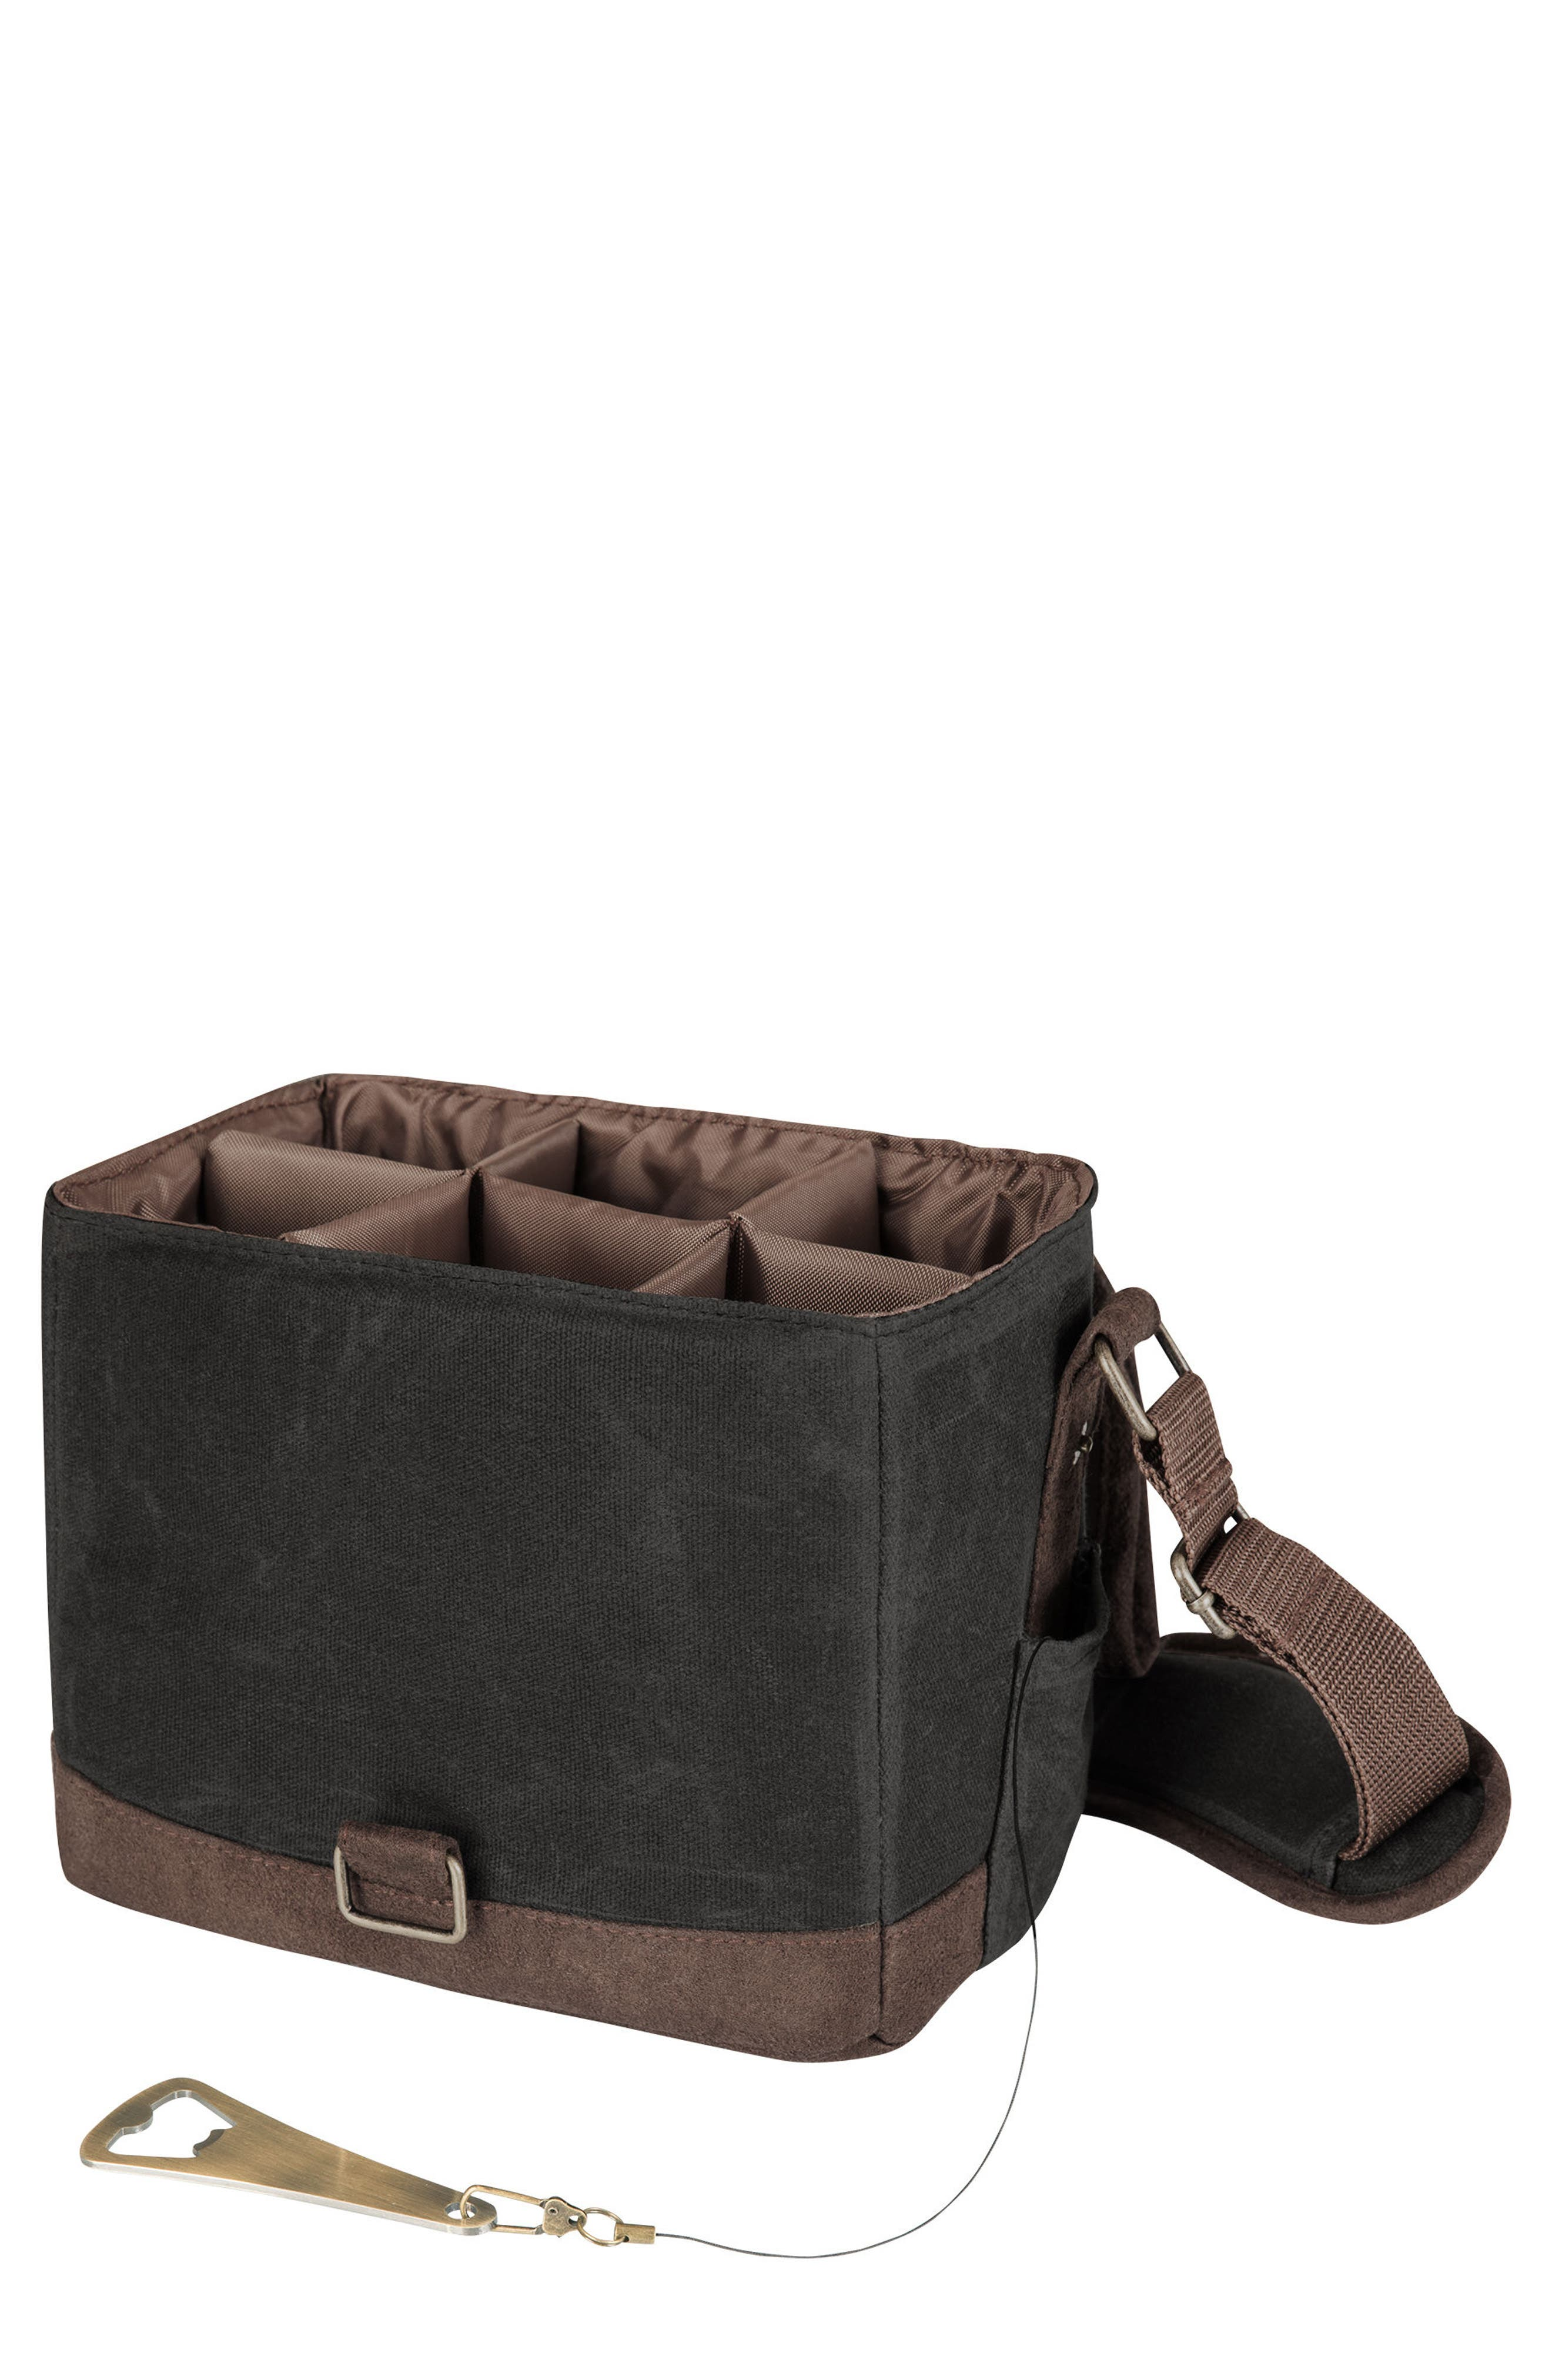 Beer Caddy Cooler Tote,                             Main thumbnail 1, color,                             001